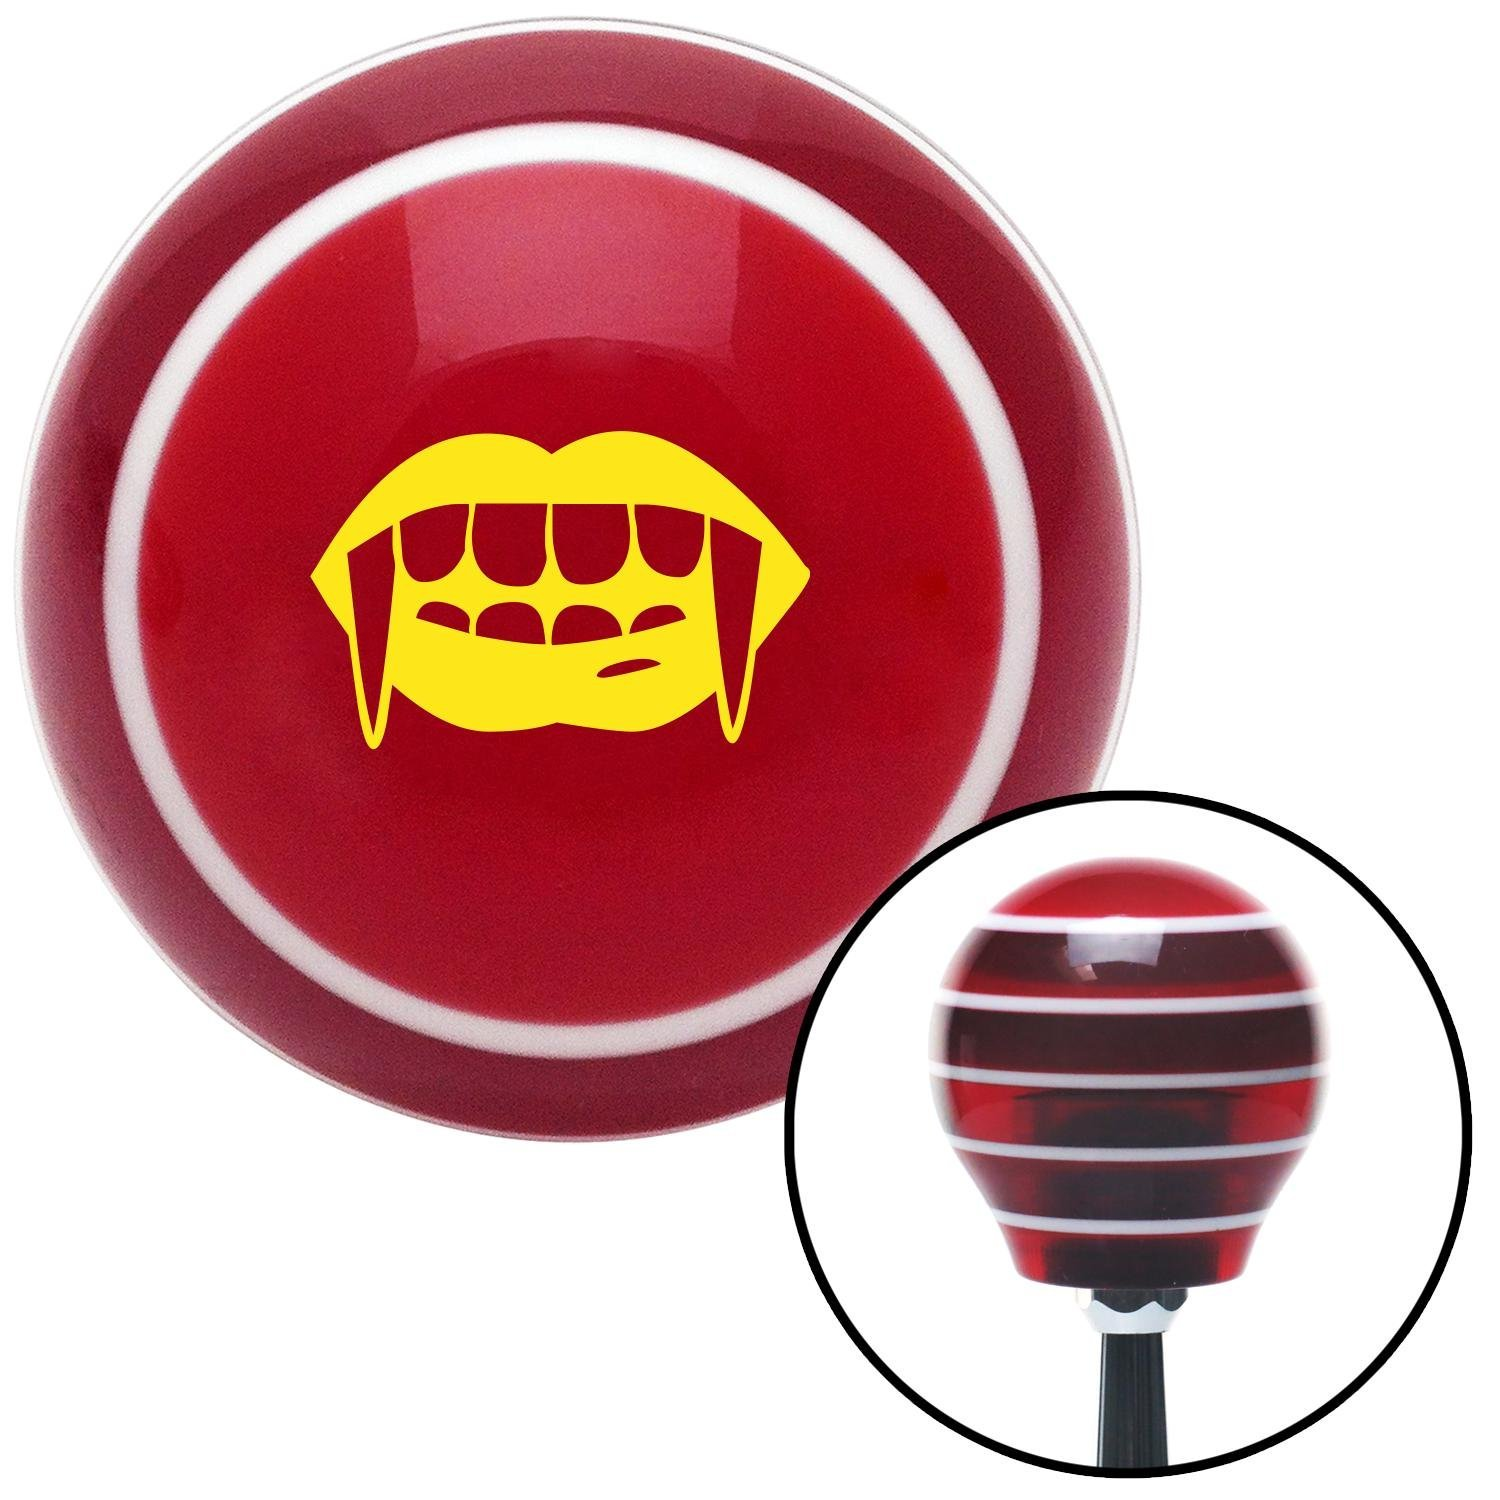 American Shifter 116779 Red Stripe Shift Knob with M16 x 1.5 Insert Yellow Mouth with Fangs